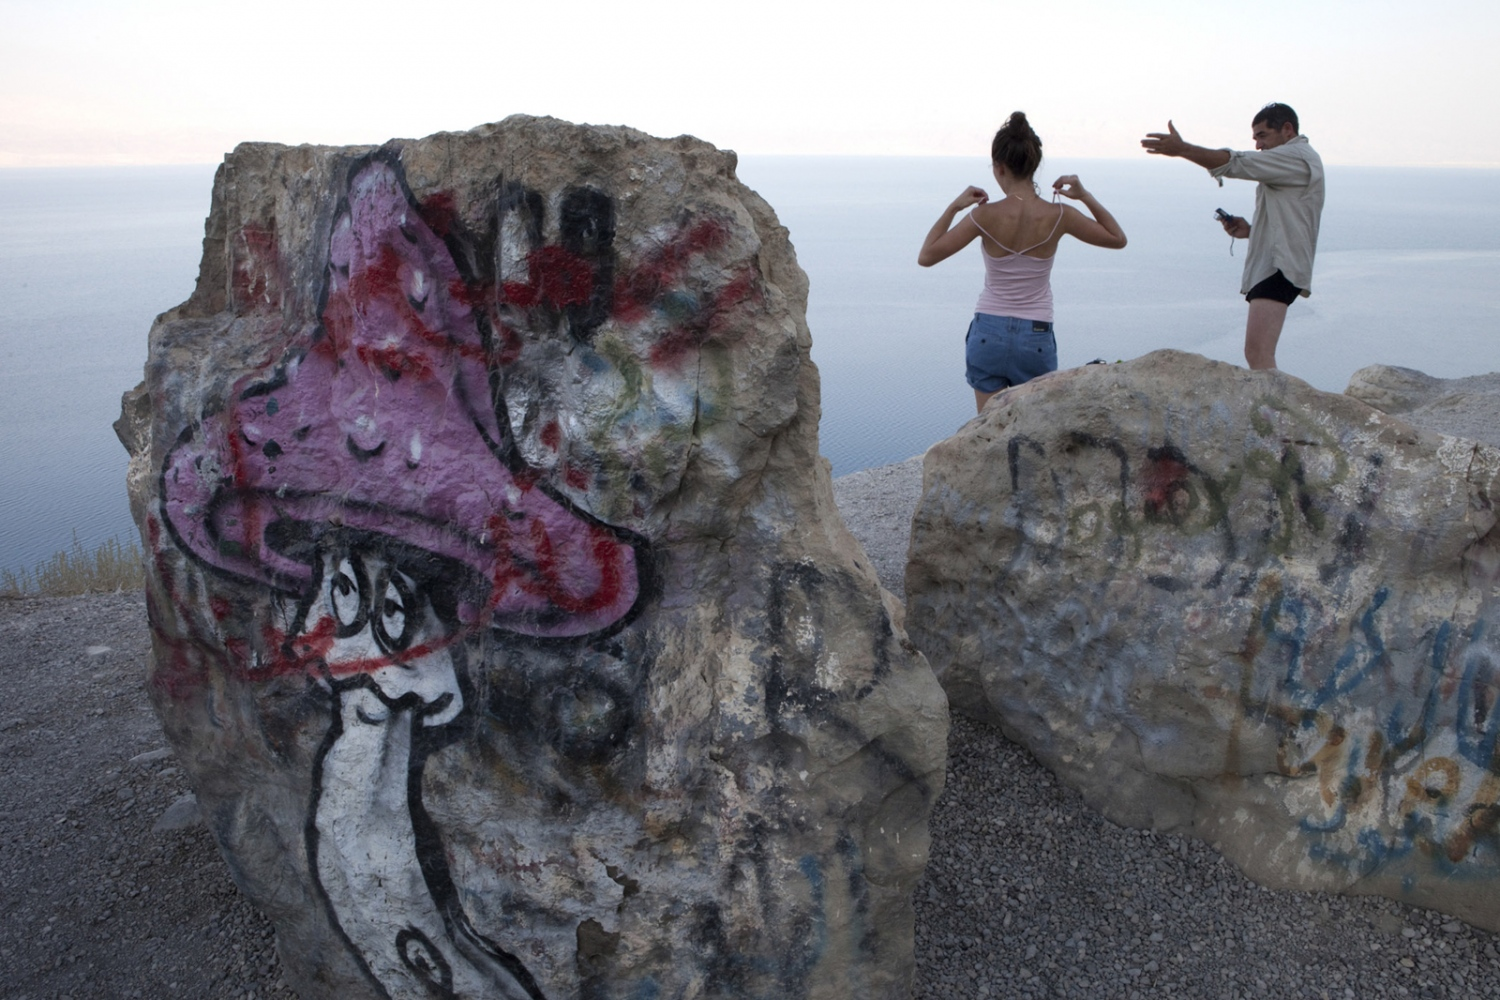 Israeli Tourists pose for photos at a viewing point on route 90 on the coast of the Dead Sea. The far shore is Jordan.